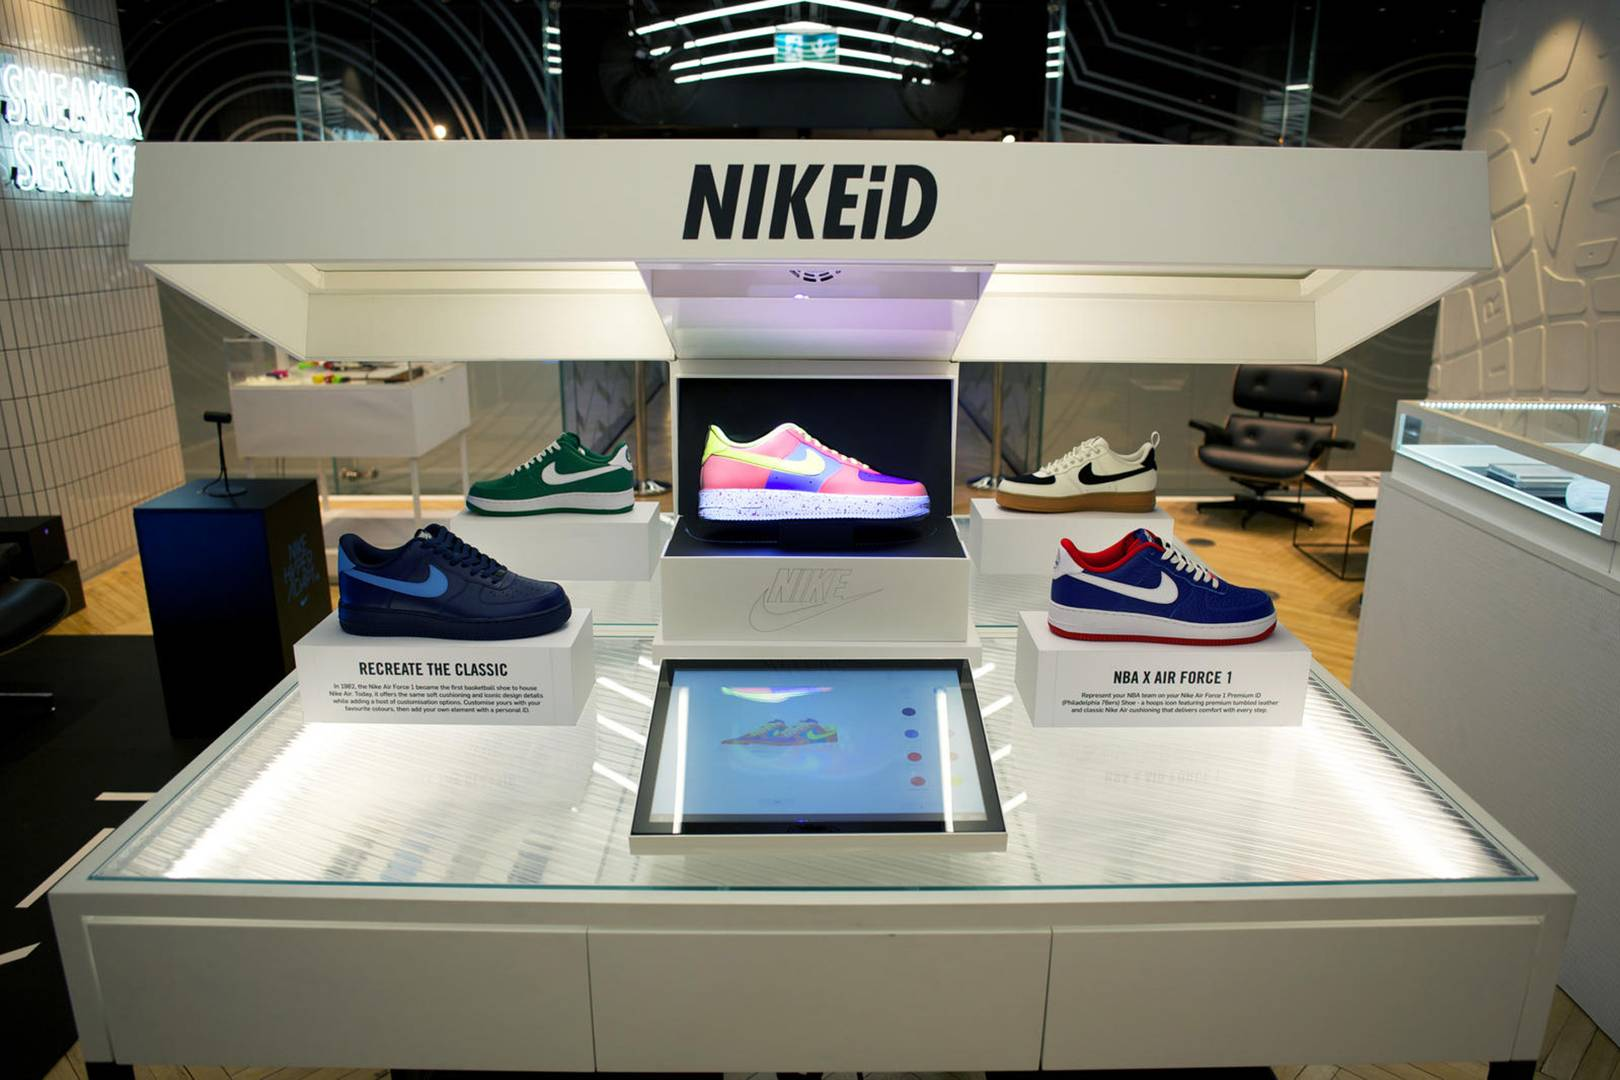 info for 05e09 a8960 The new Nike iD Direct Studio is the future of customised kicks   British GQ